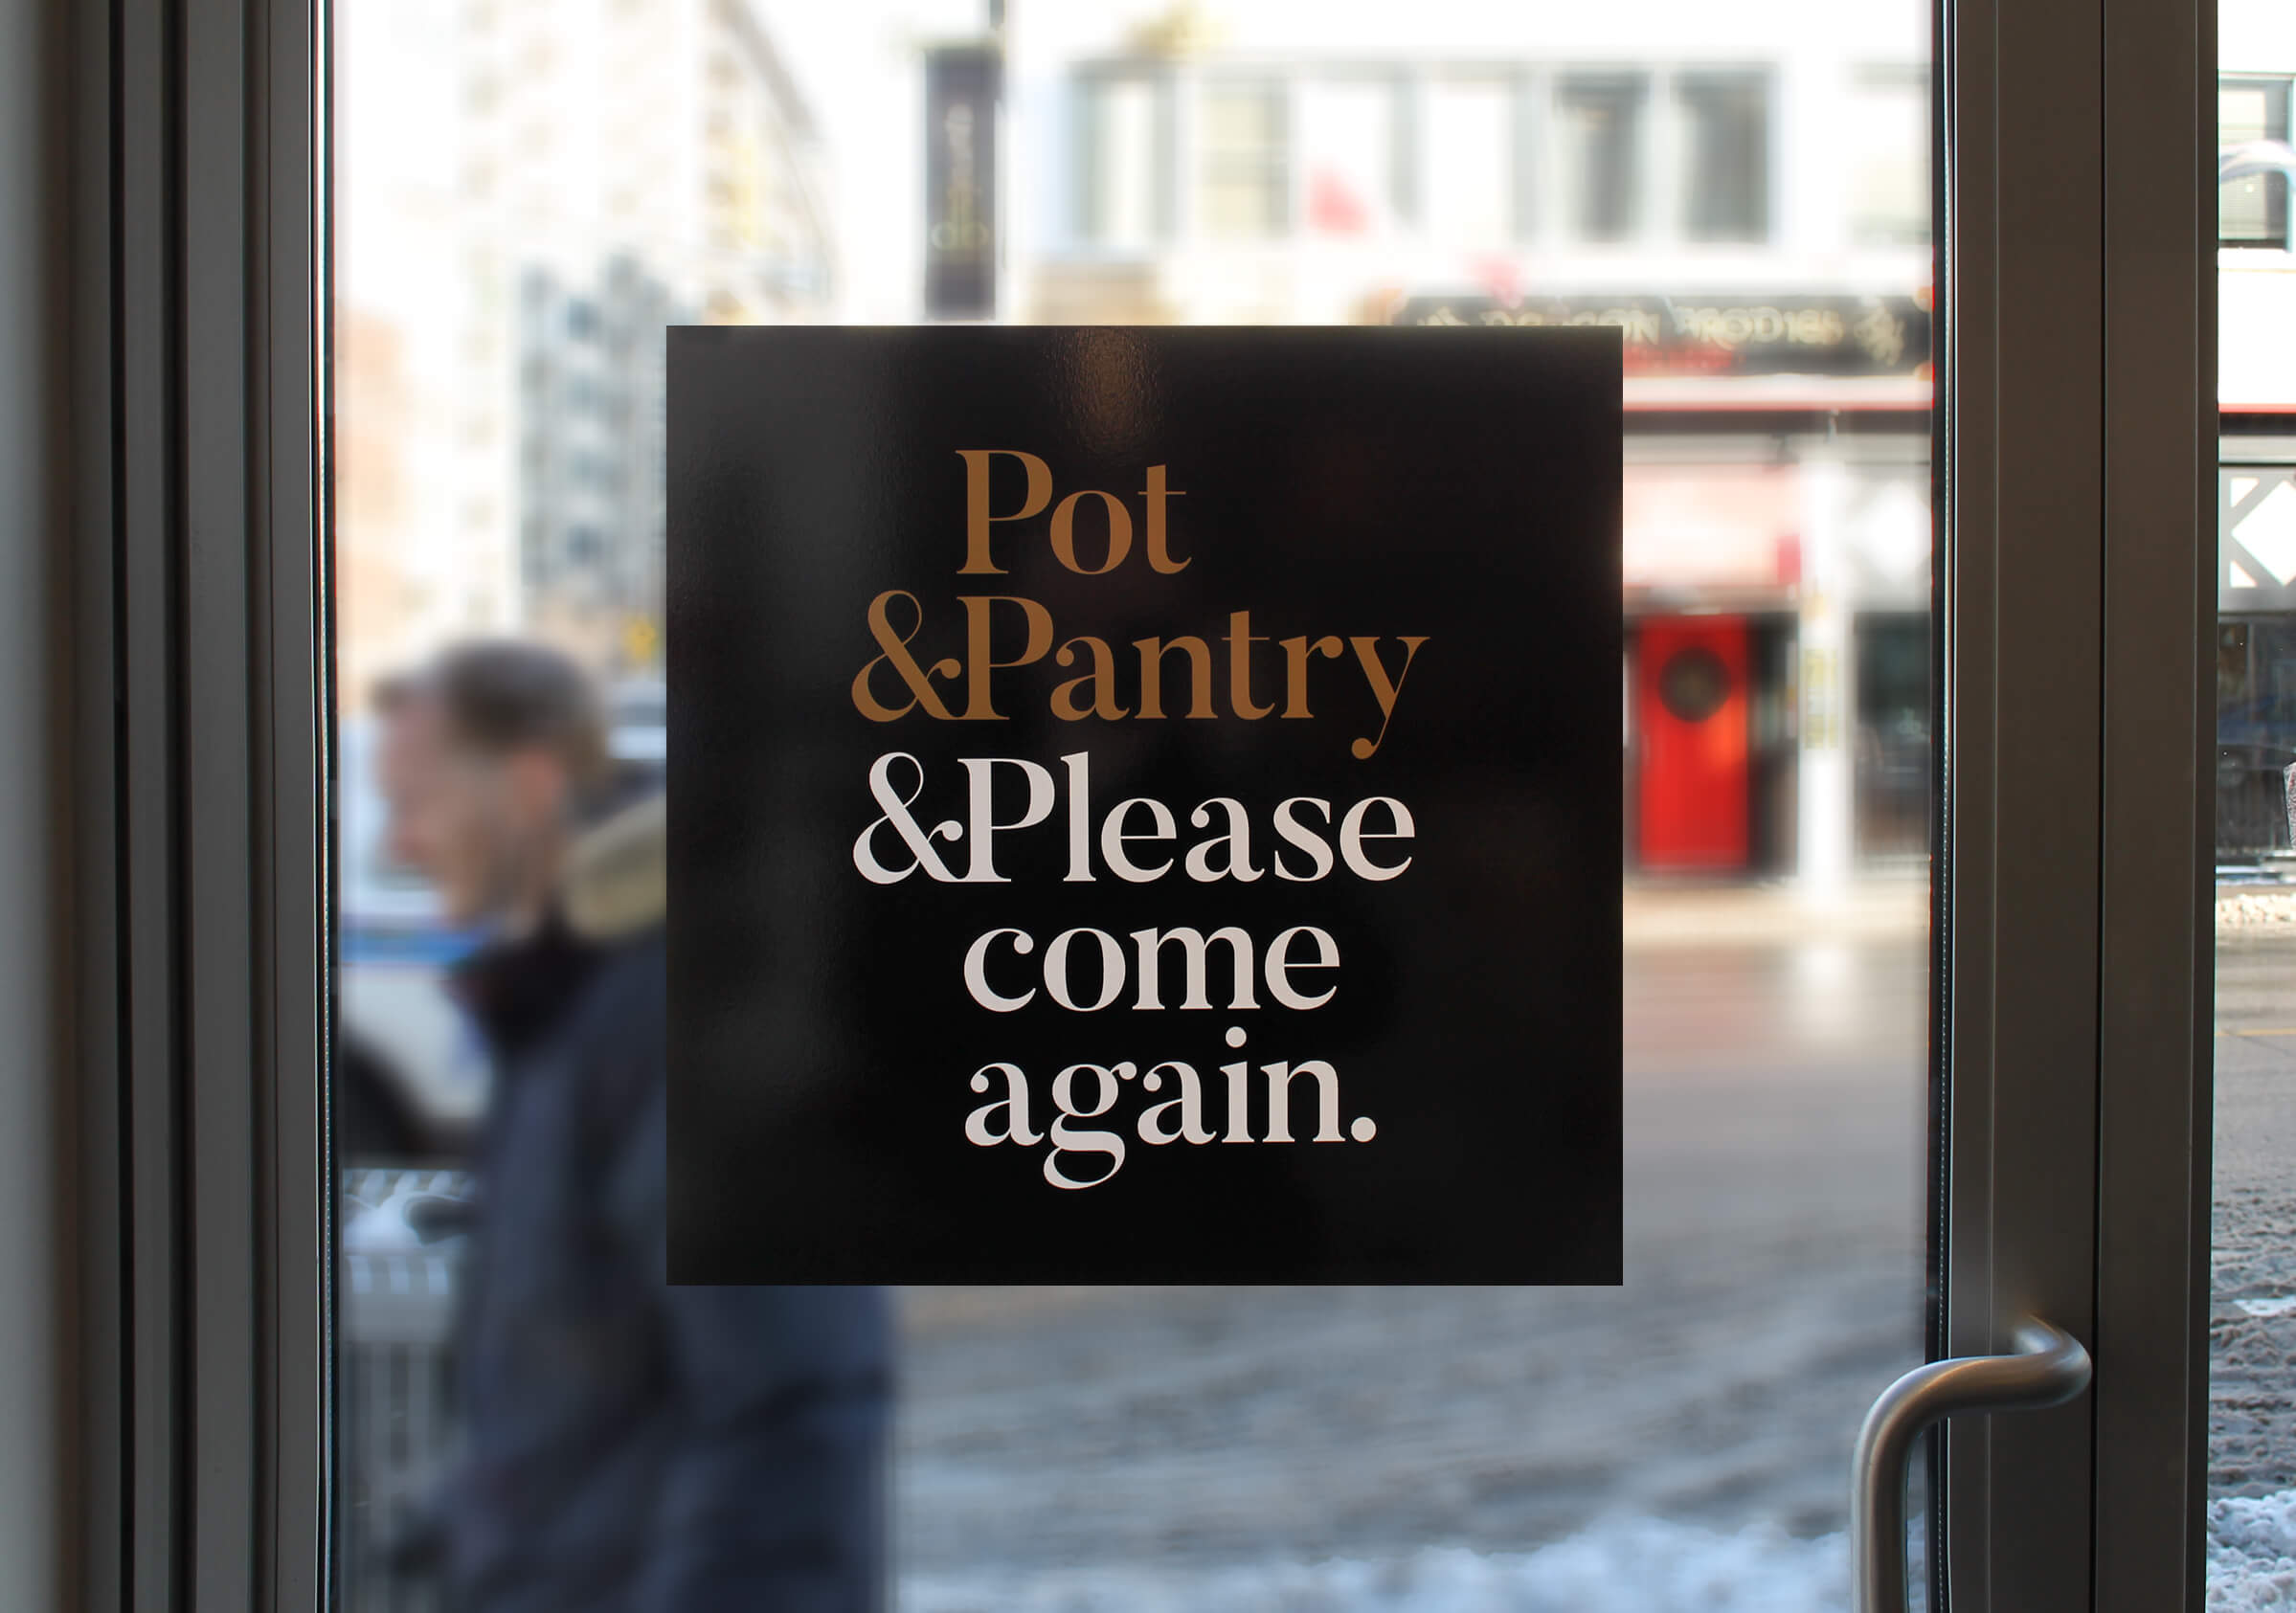 Pot&Pantry Door Signage by Ottawa Graphic Designer idApostle